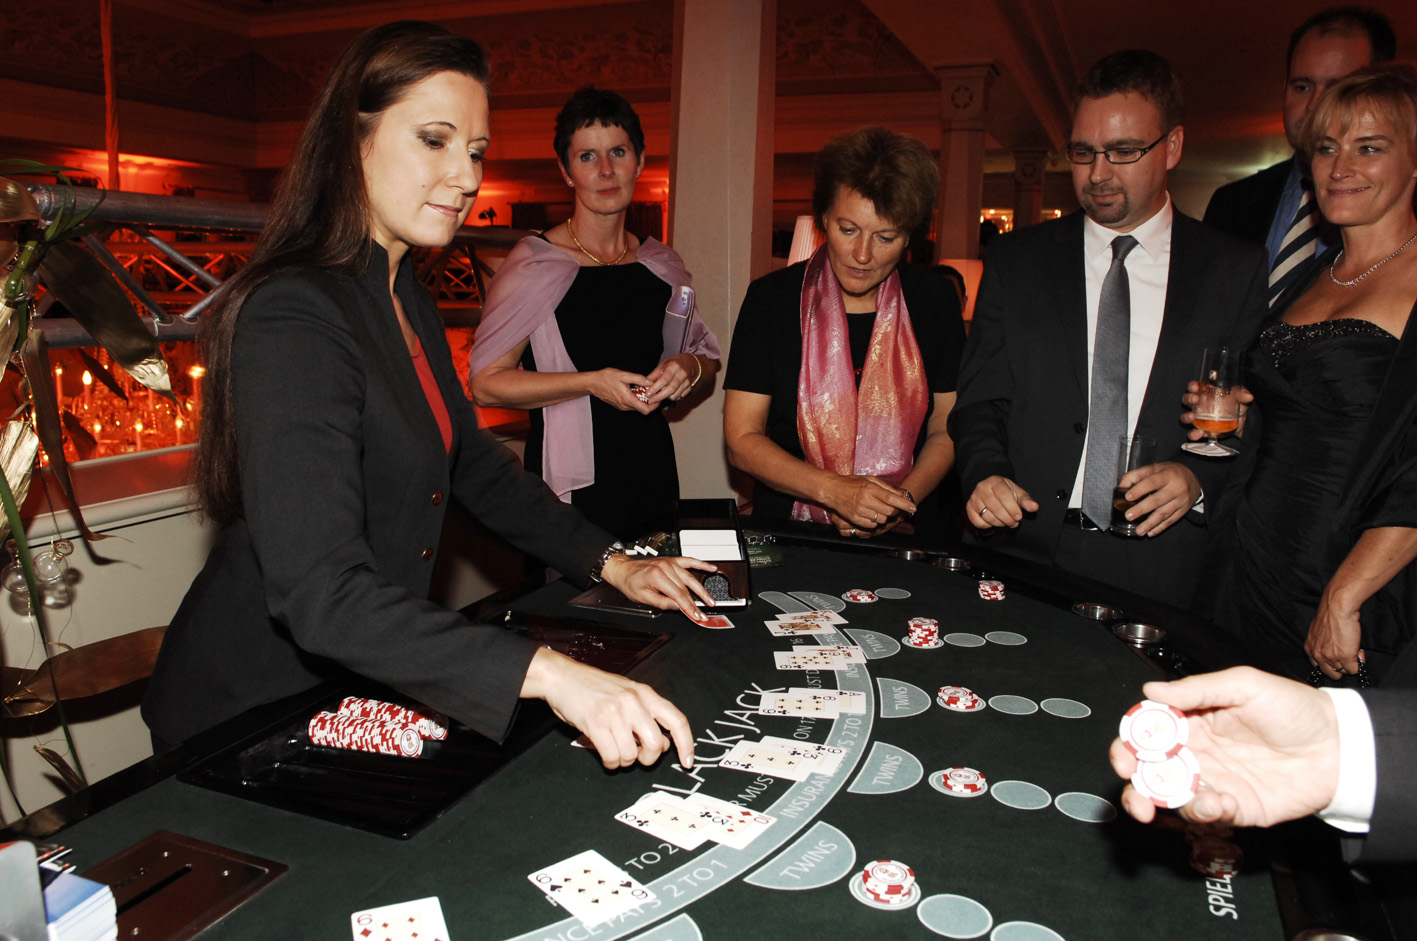 Cash-gala-27 in Cash.Gala 2012: das Top-Event in Bildern